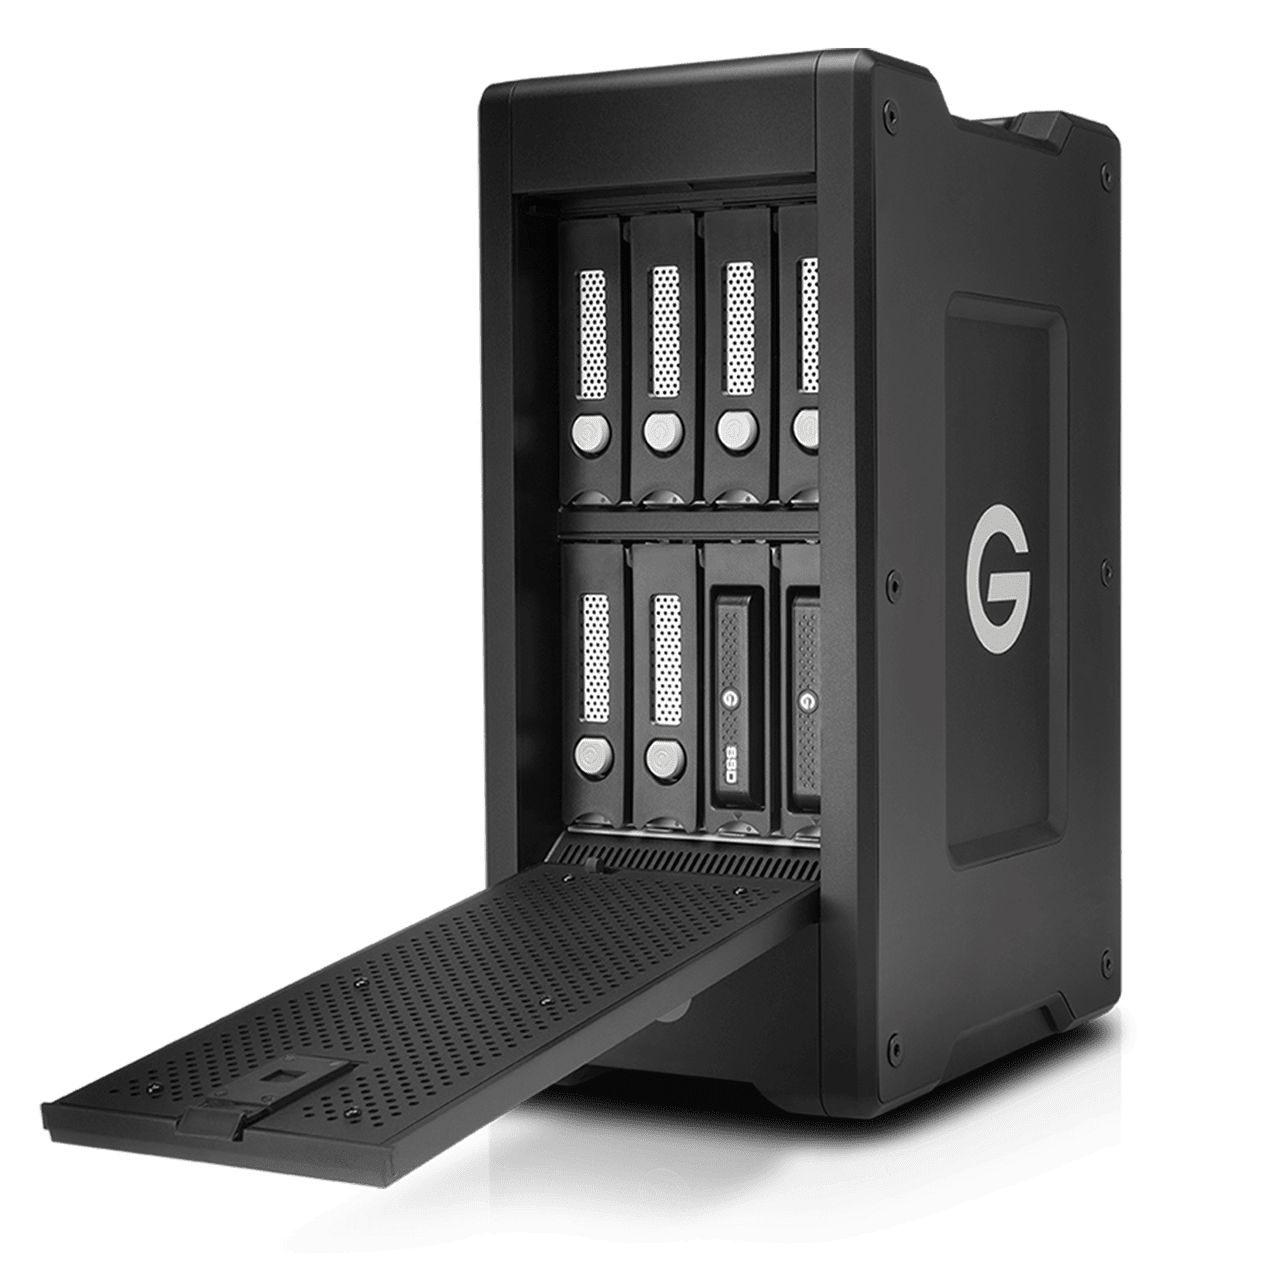 G-Technology G-SPEED XL unidad de disco multiple 112 TB Negro